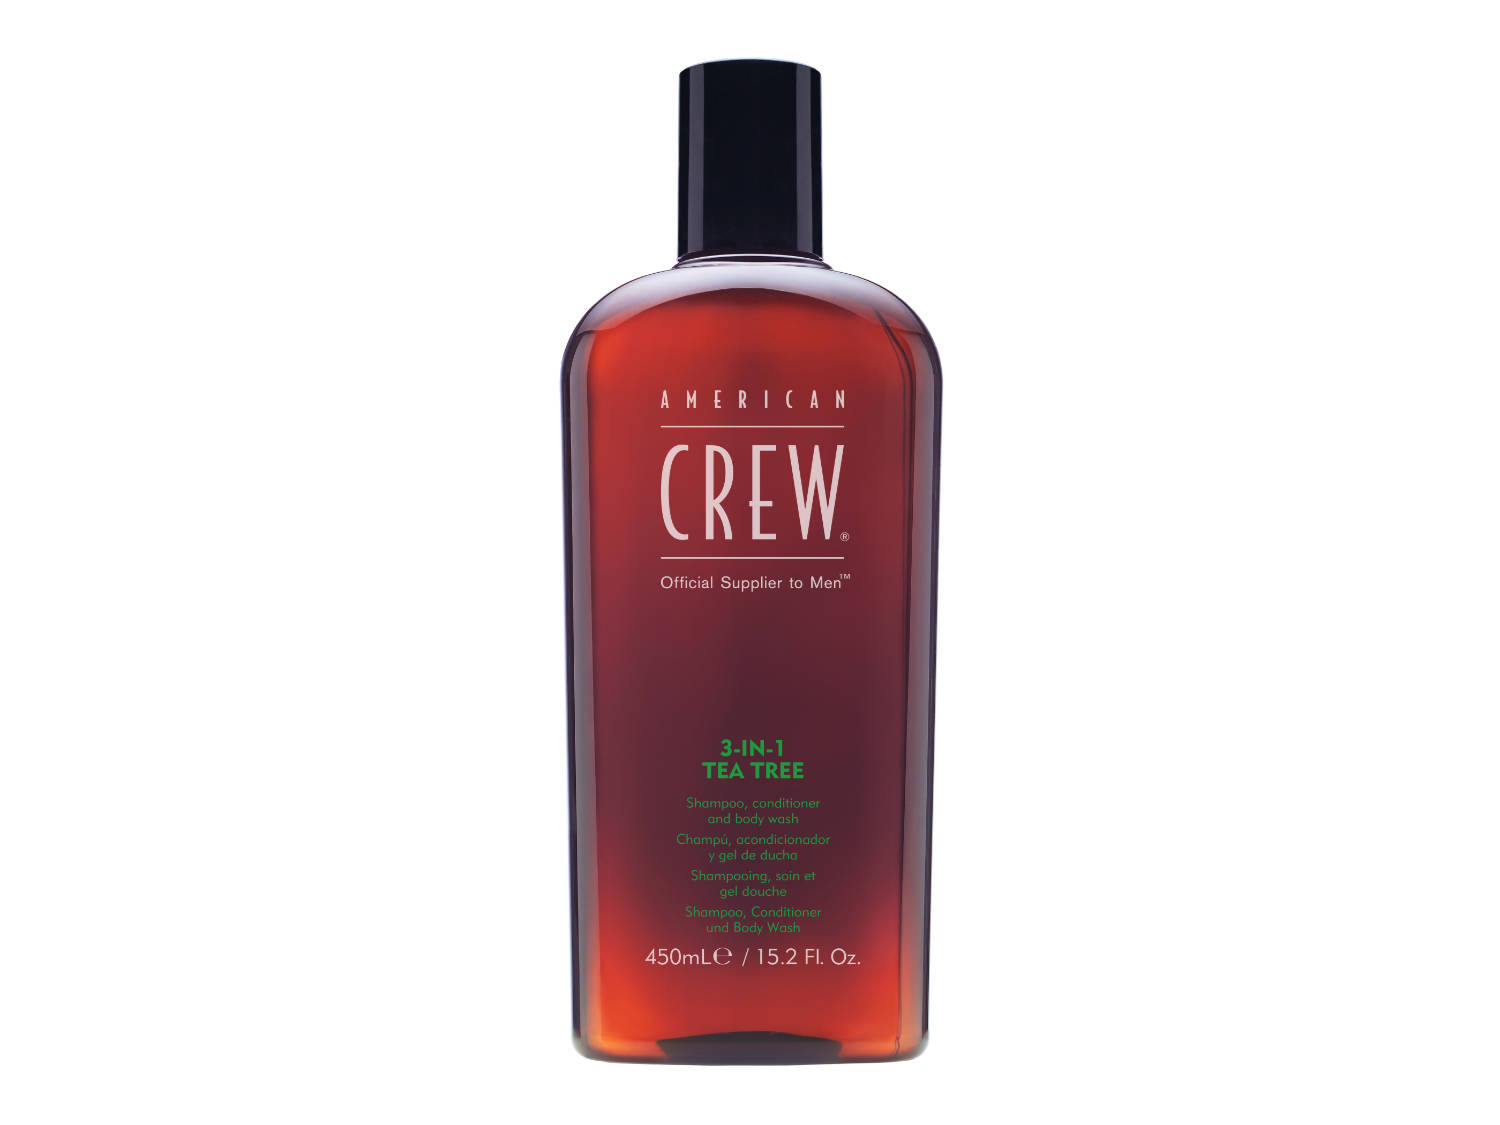 Arma Beauty - American Crew - 3-IN-1 Tea Tree